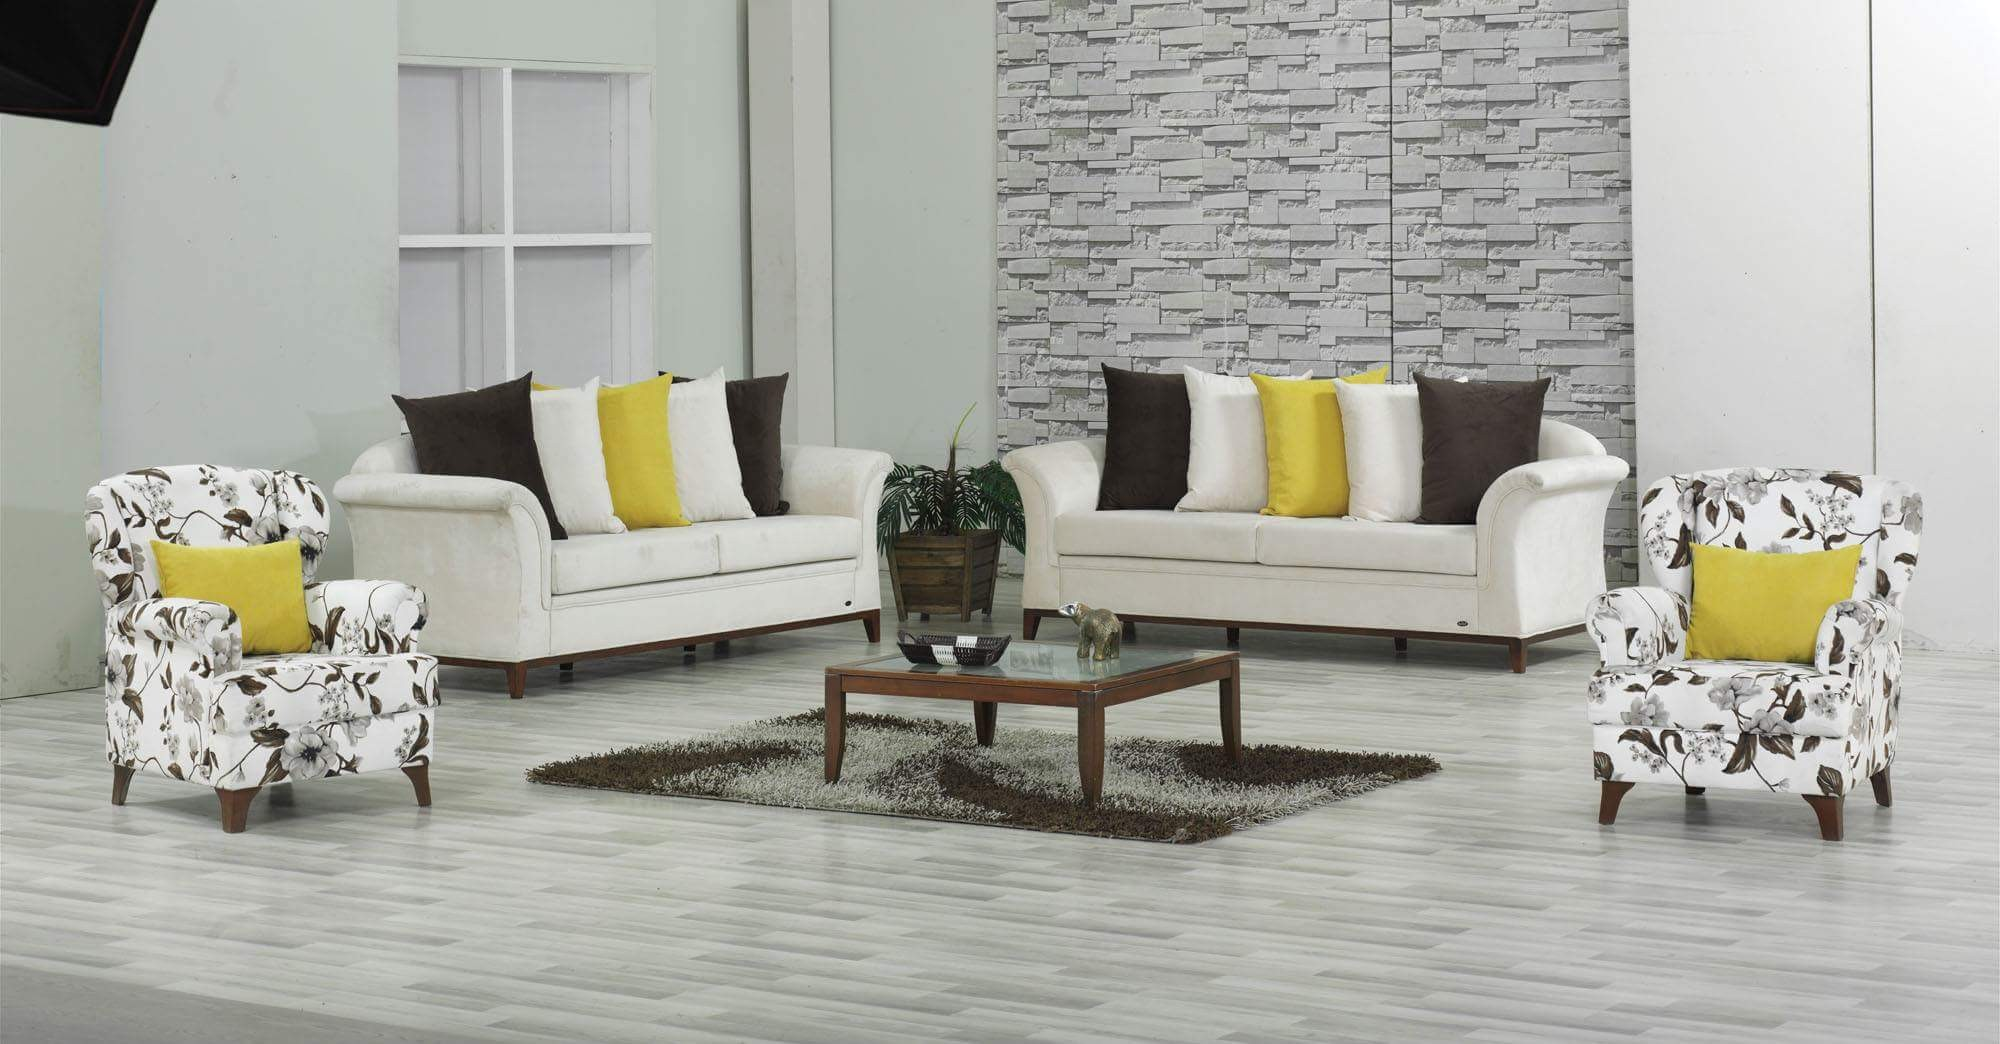 9 Seater Sofa Set Designs With Price Blessed 7 Seater Sofa Set